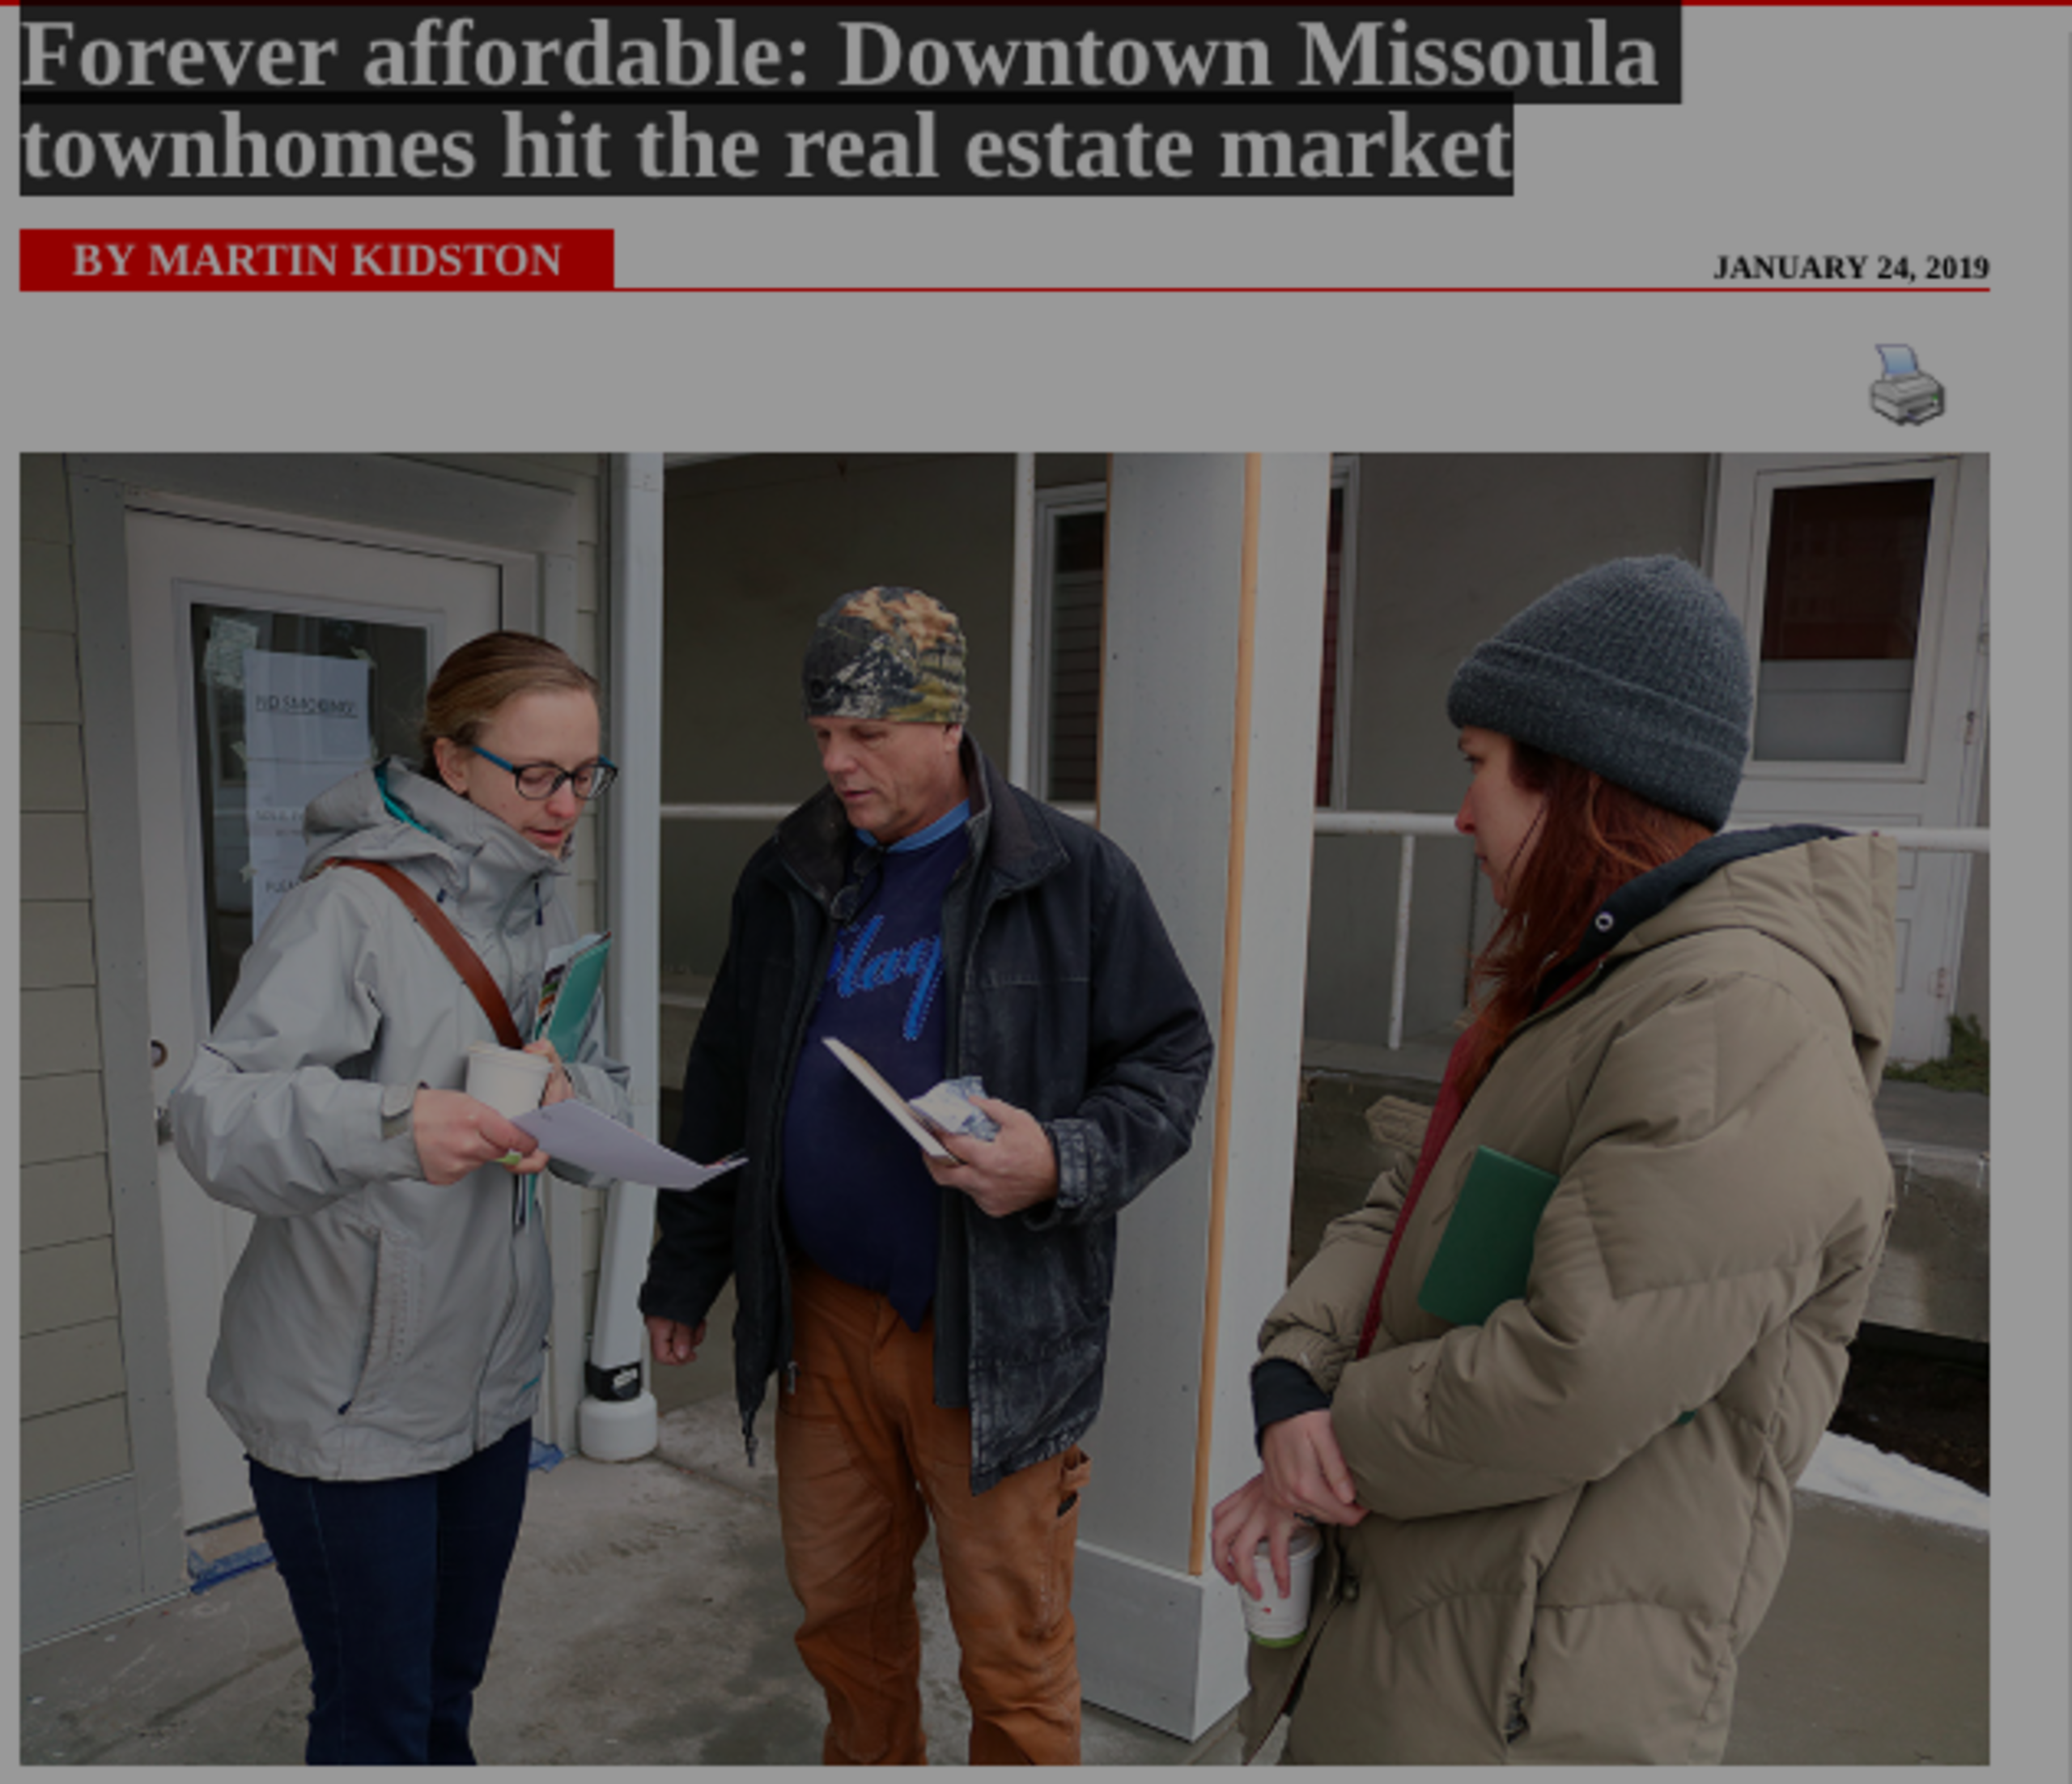 Forever affordable: Downtown Missoula townhomes hit the real estate market